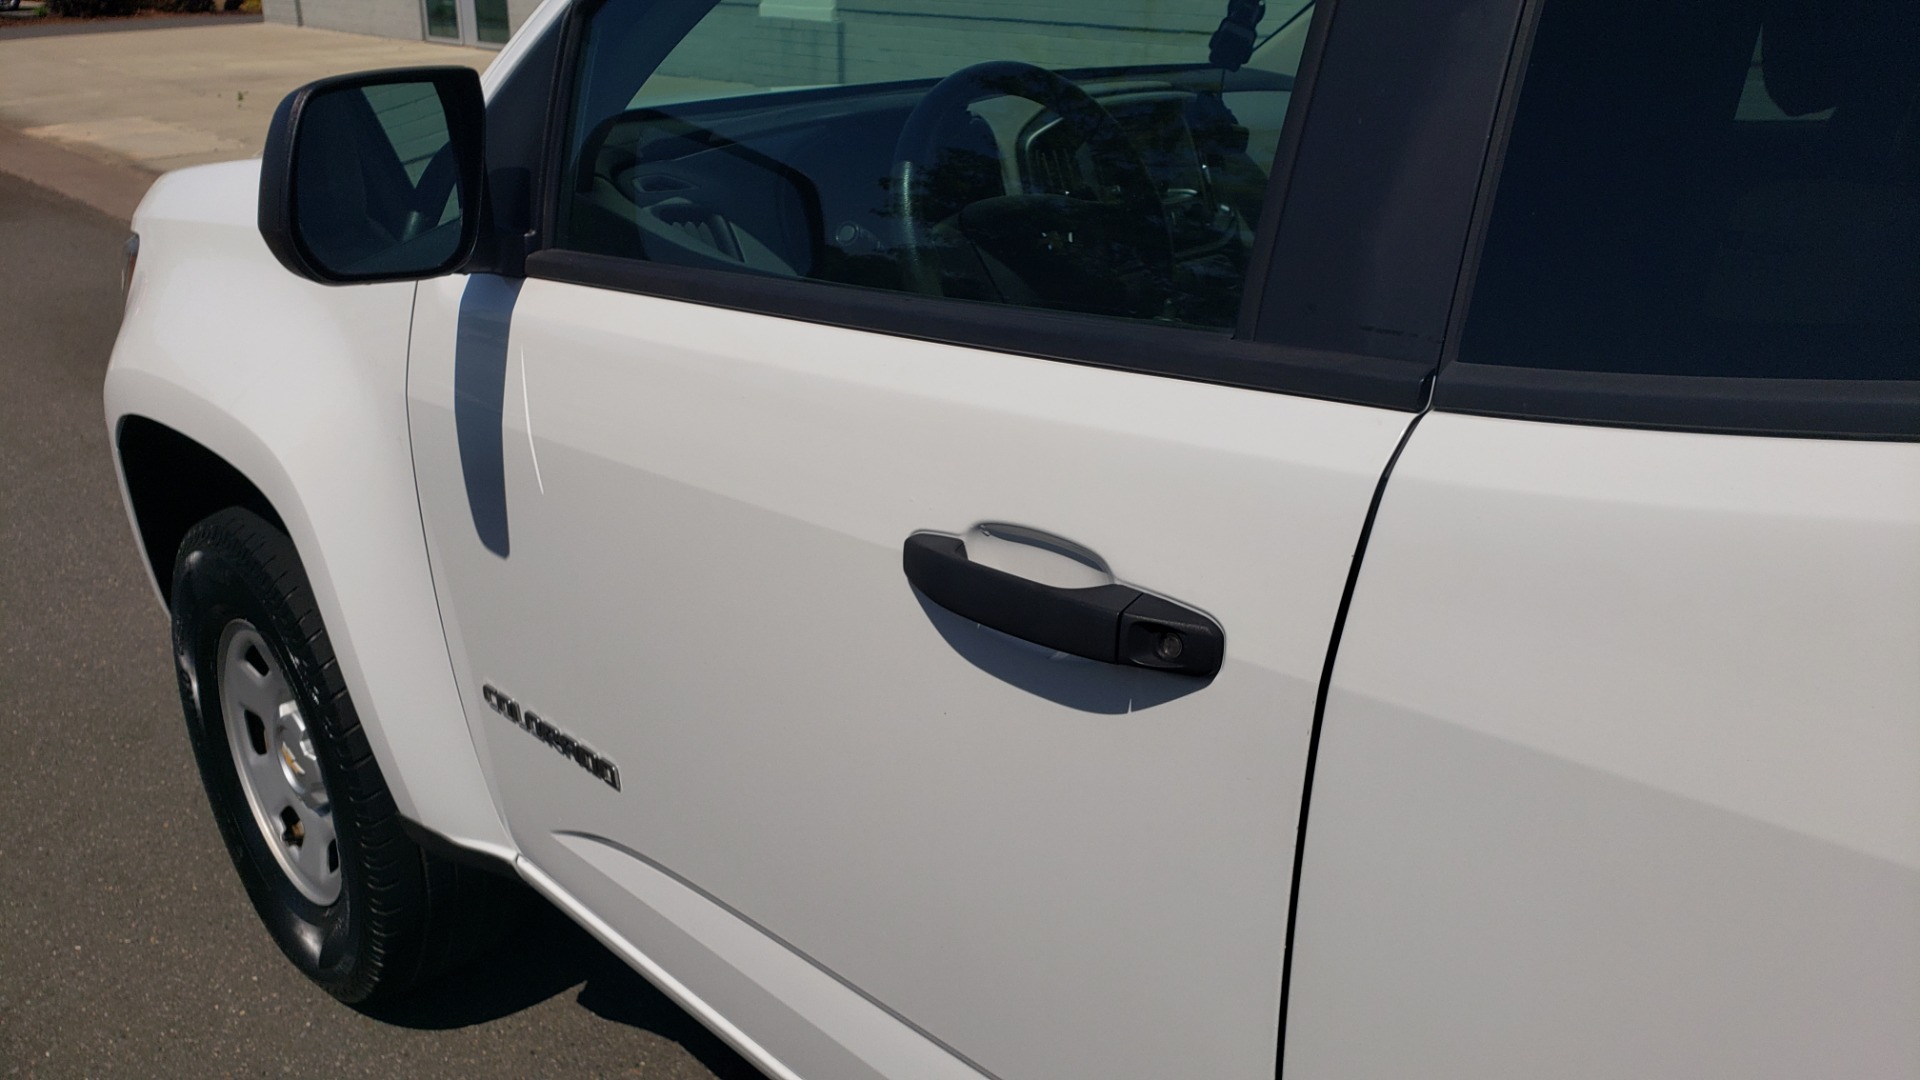 Used 2016 Chevrolet COLORADO 2WD WT / EXT CAB / 128.3 WB / 4-CYL / 6-SPD AUTO / REARVIEW for sale Sold at Formula Imports in Charlotte NC 28227 10